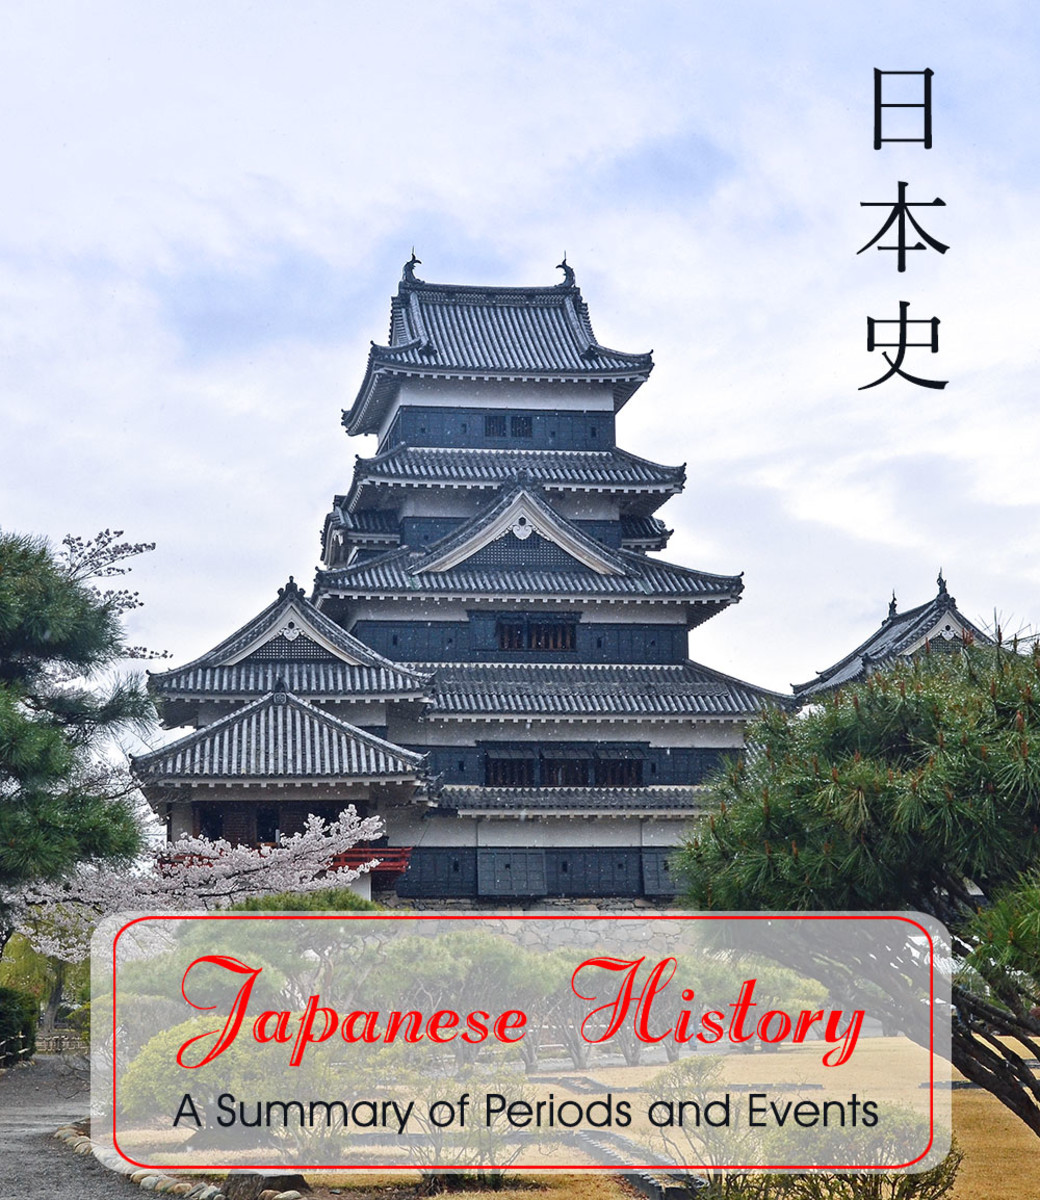 A timeline of Japanese history periods.